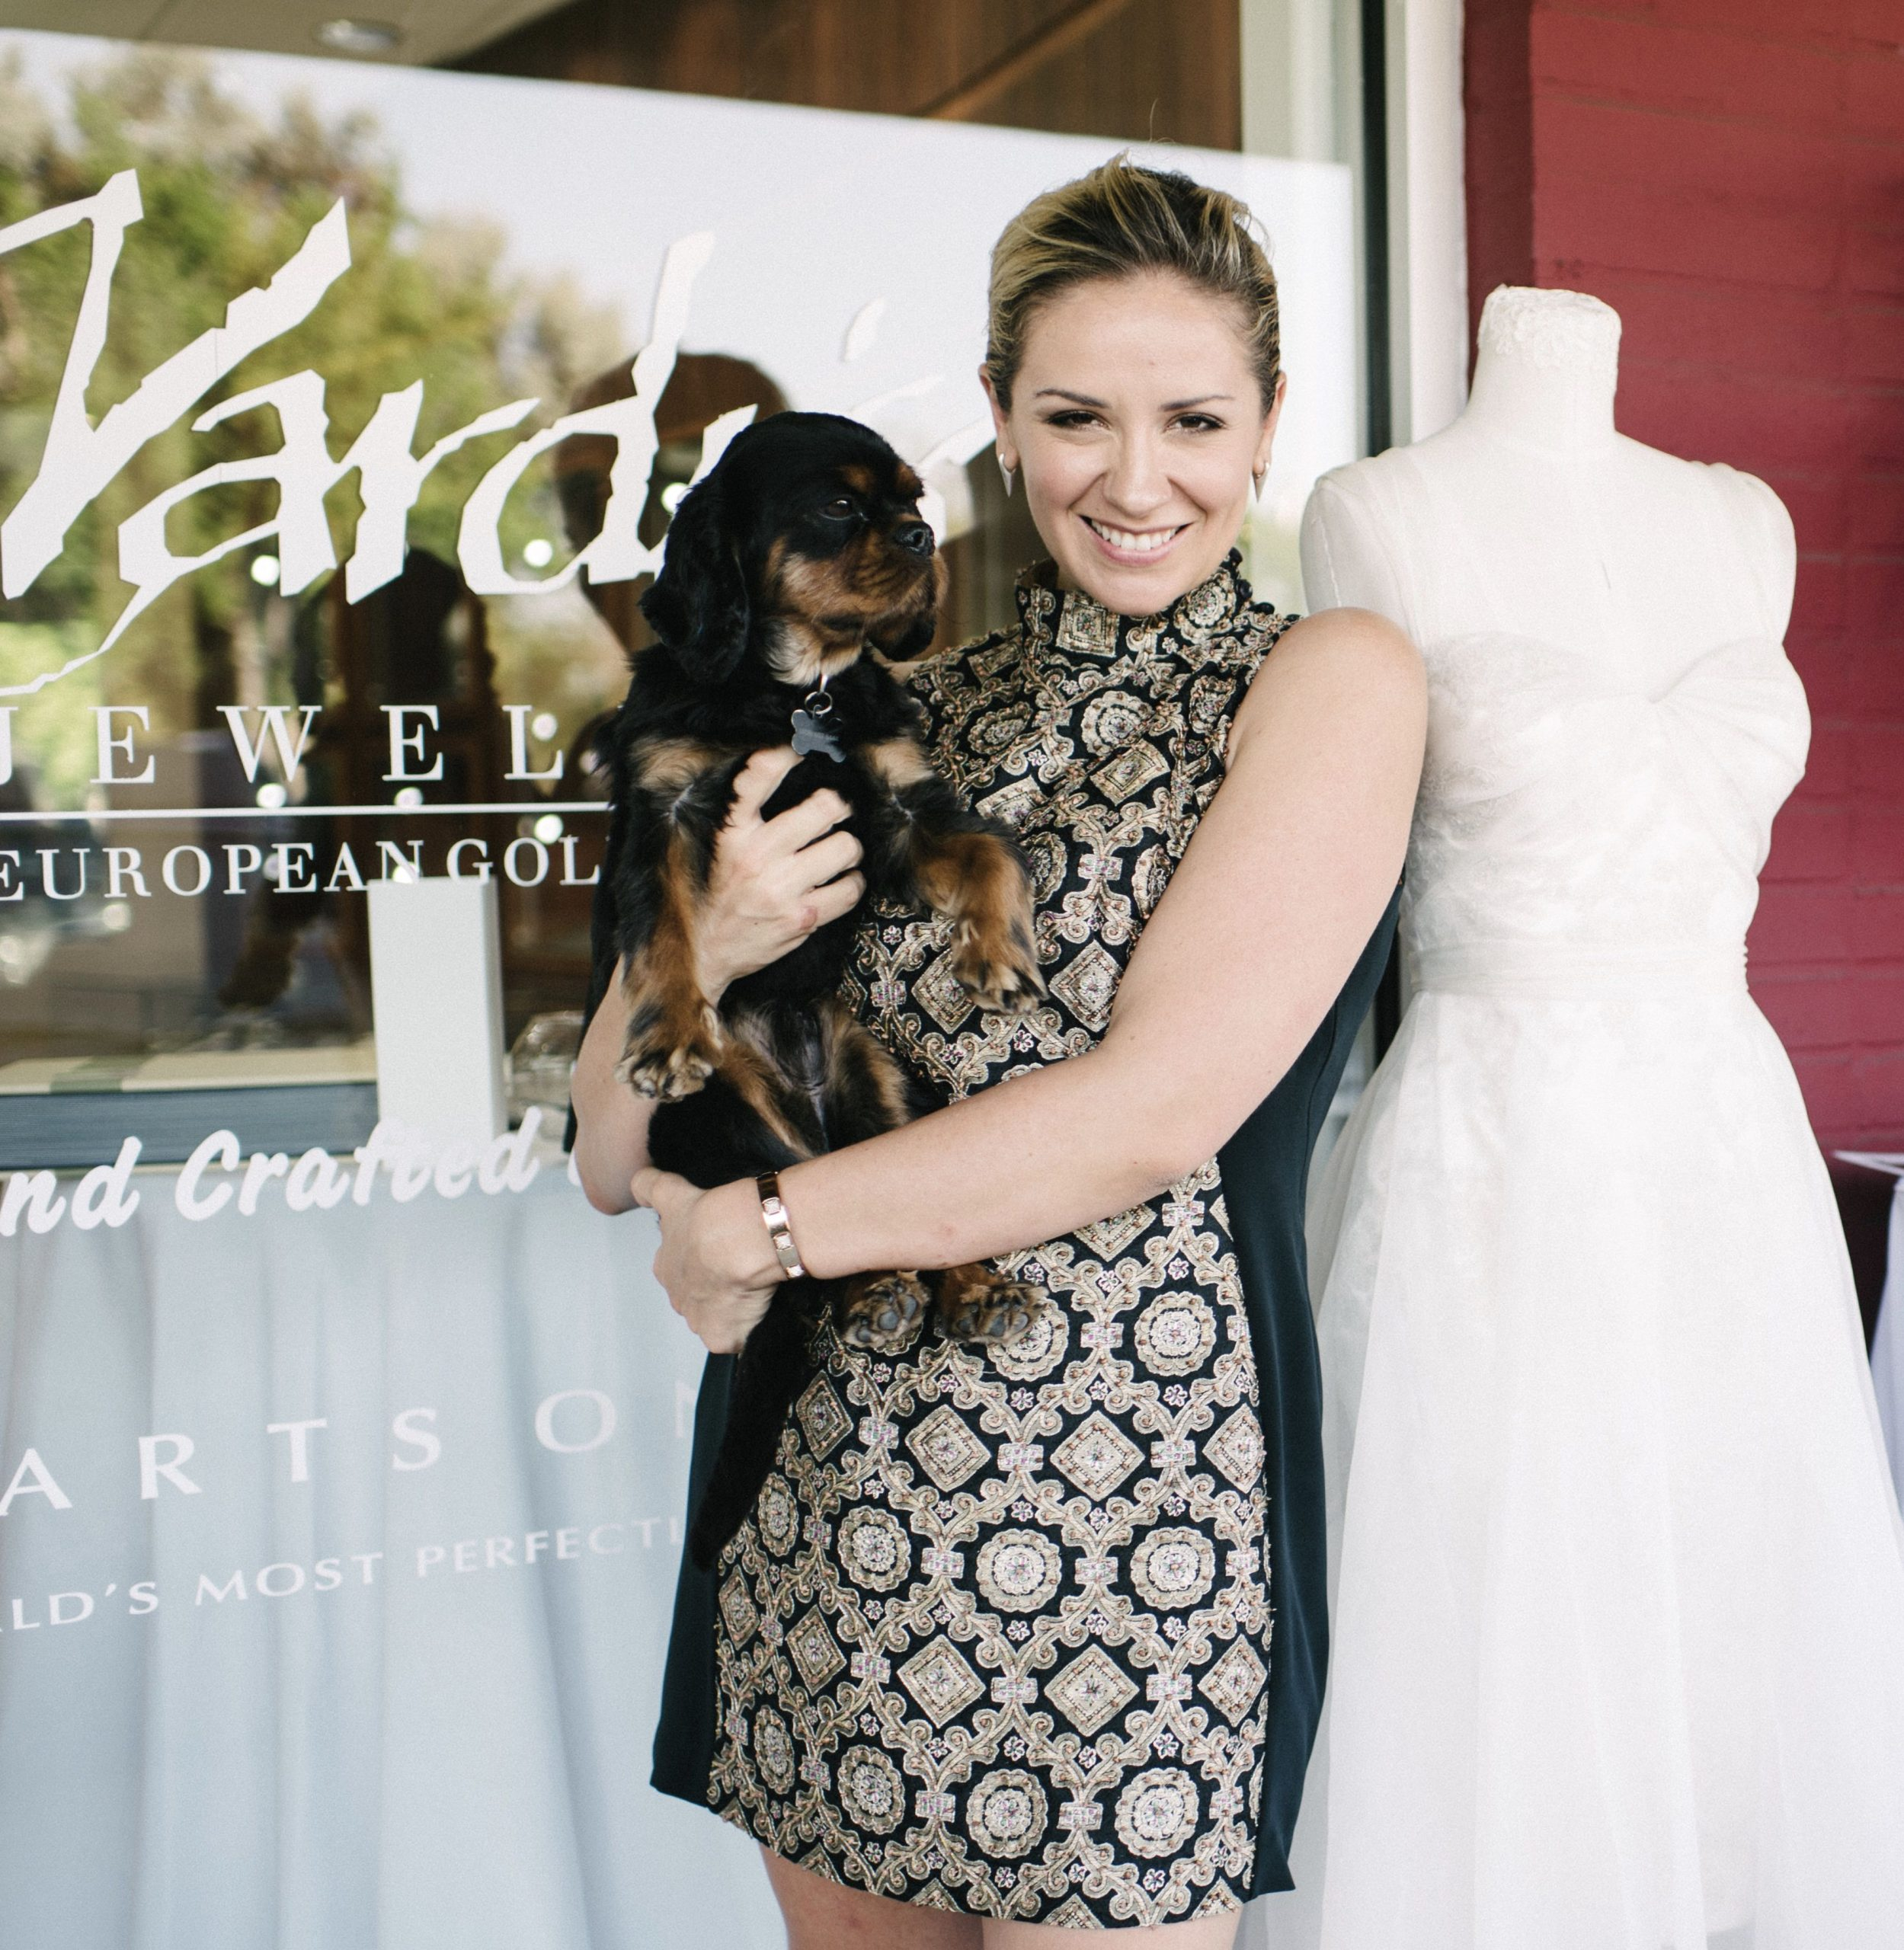 Designer Angelina Haole holding a black cavalier king charles spaniel in front of a jewelry store and standing next to a wedding dress on display